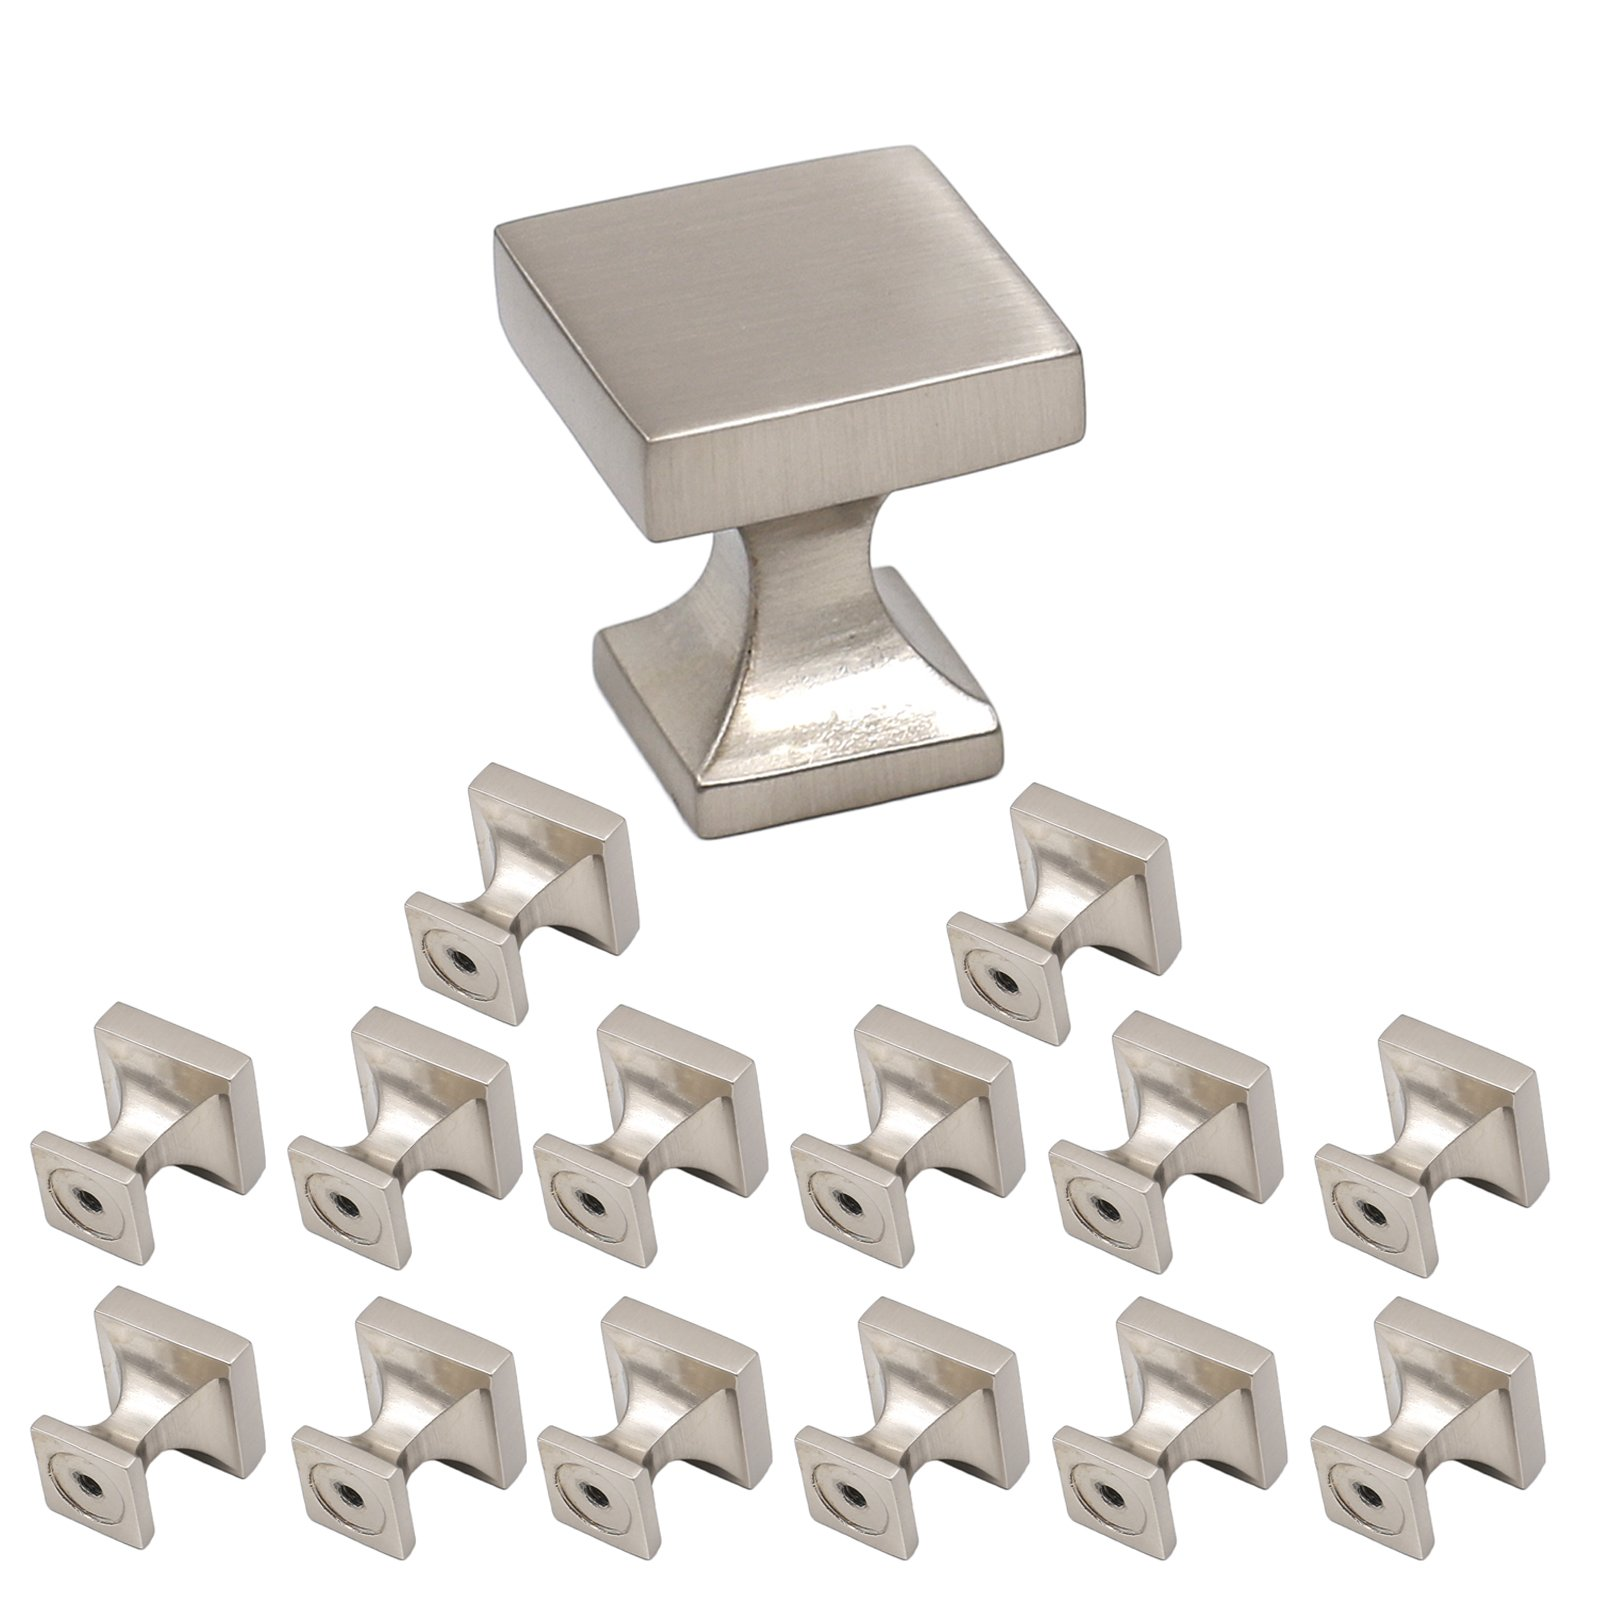 Brushed Nickel Cabinets Knobs 15 Pack-Homdiy HD148 WxW:4/5in Square Brushed Satin Nickel SOILD Cabinets Knobs Hardware Knobs Pulls